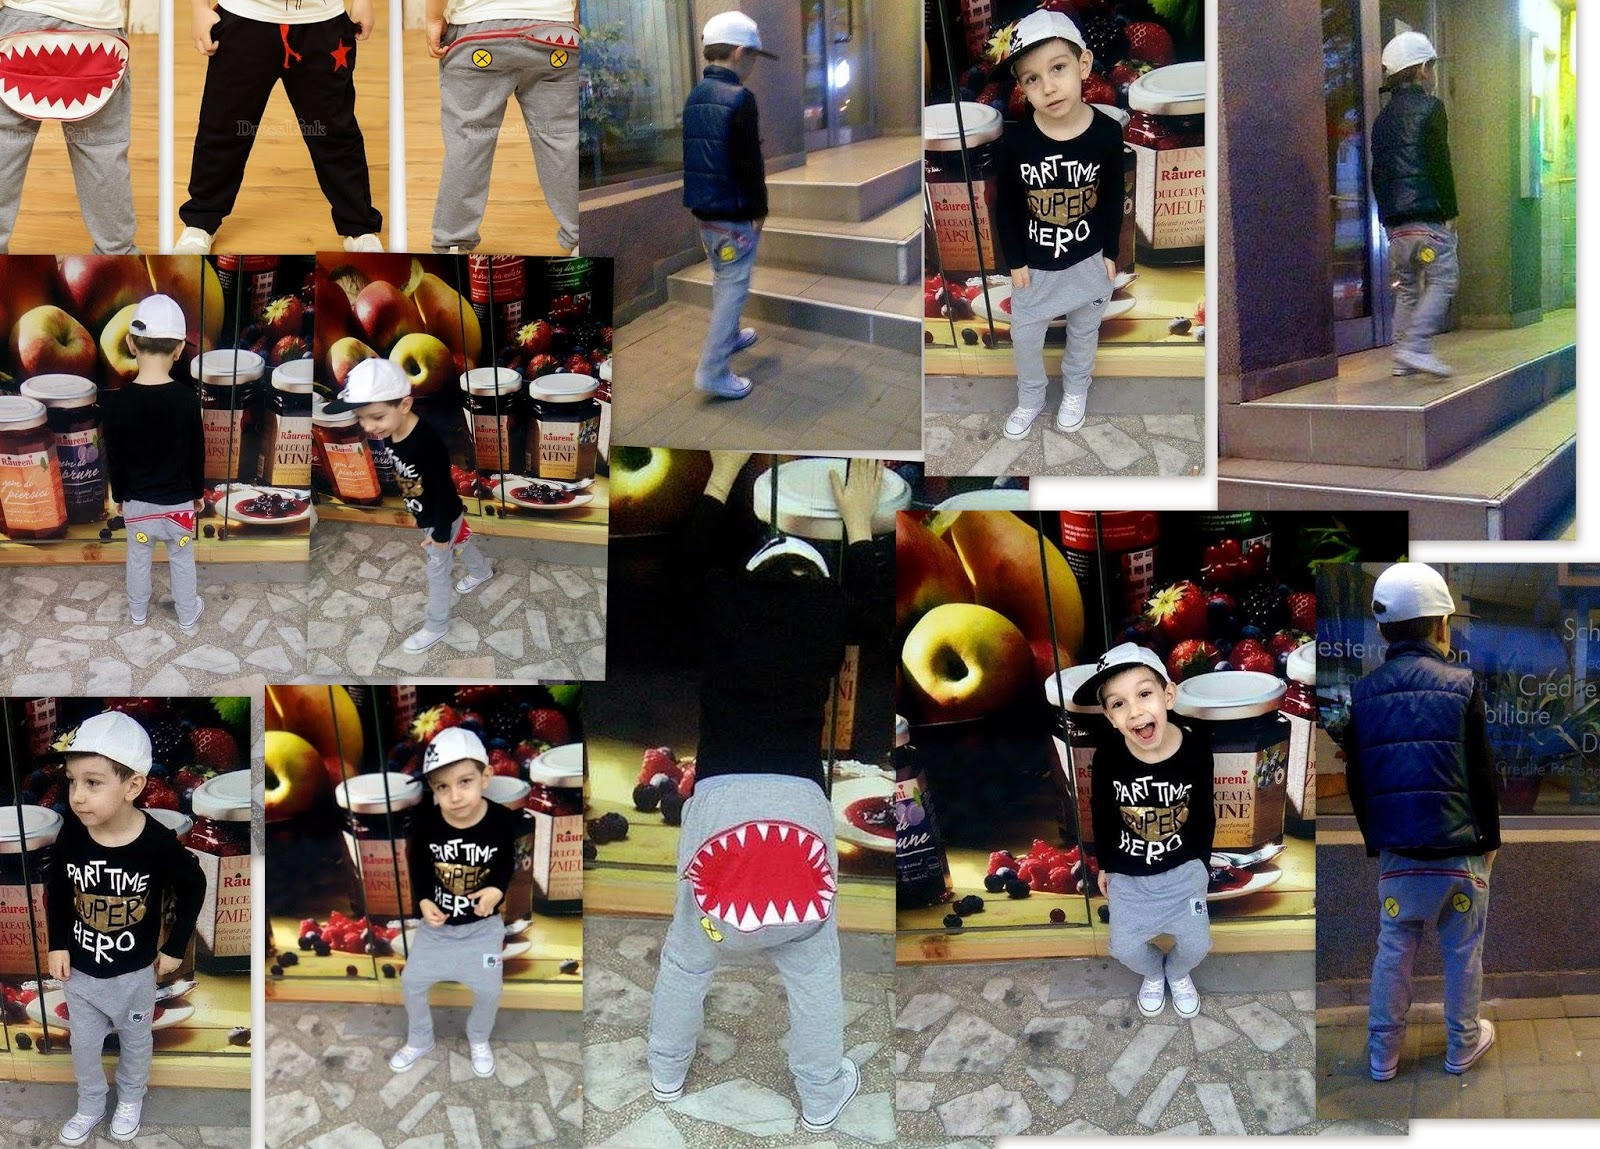 http://www.dresslink.com/baby-boy-kids-childrens-spring-summer-fall-clothing-shark-mouth-pants-thin-trousers-p-15903.html?utm_source=blog&utm_medium=banner&utm_campaign=lendy163